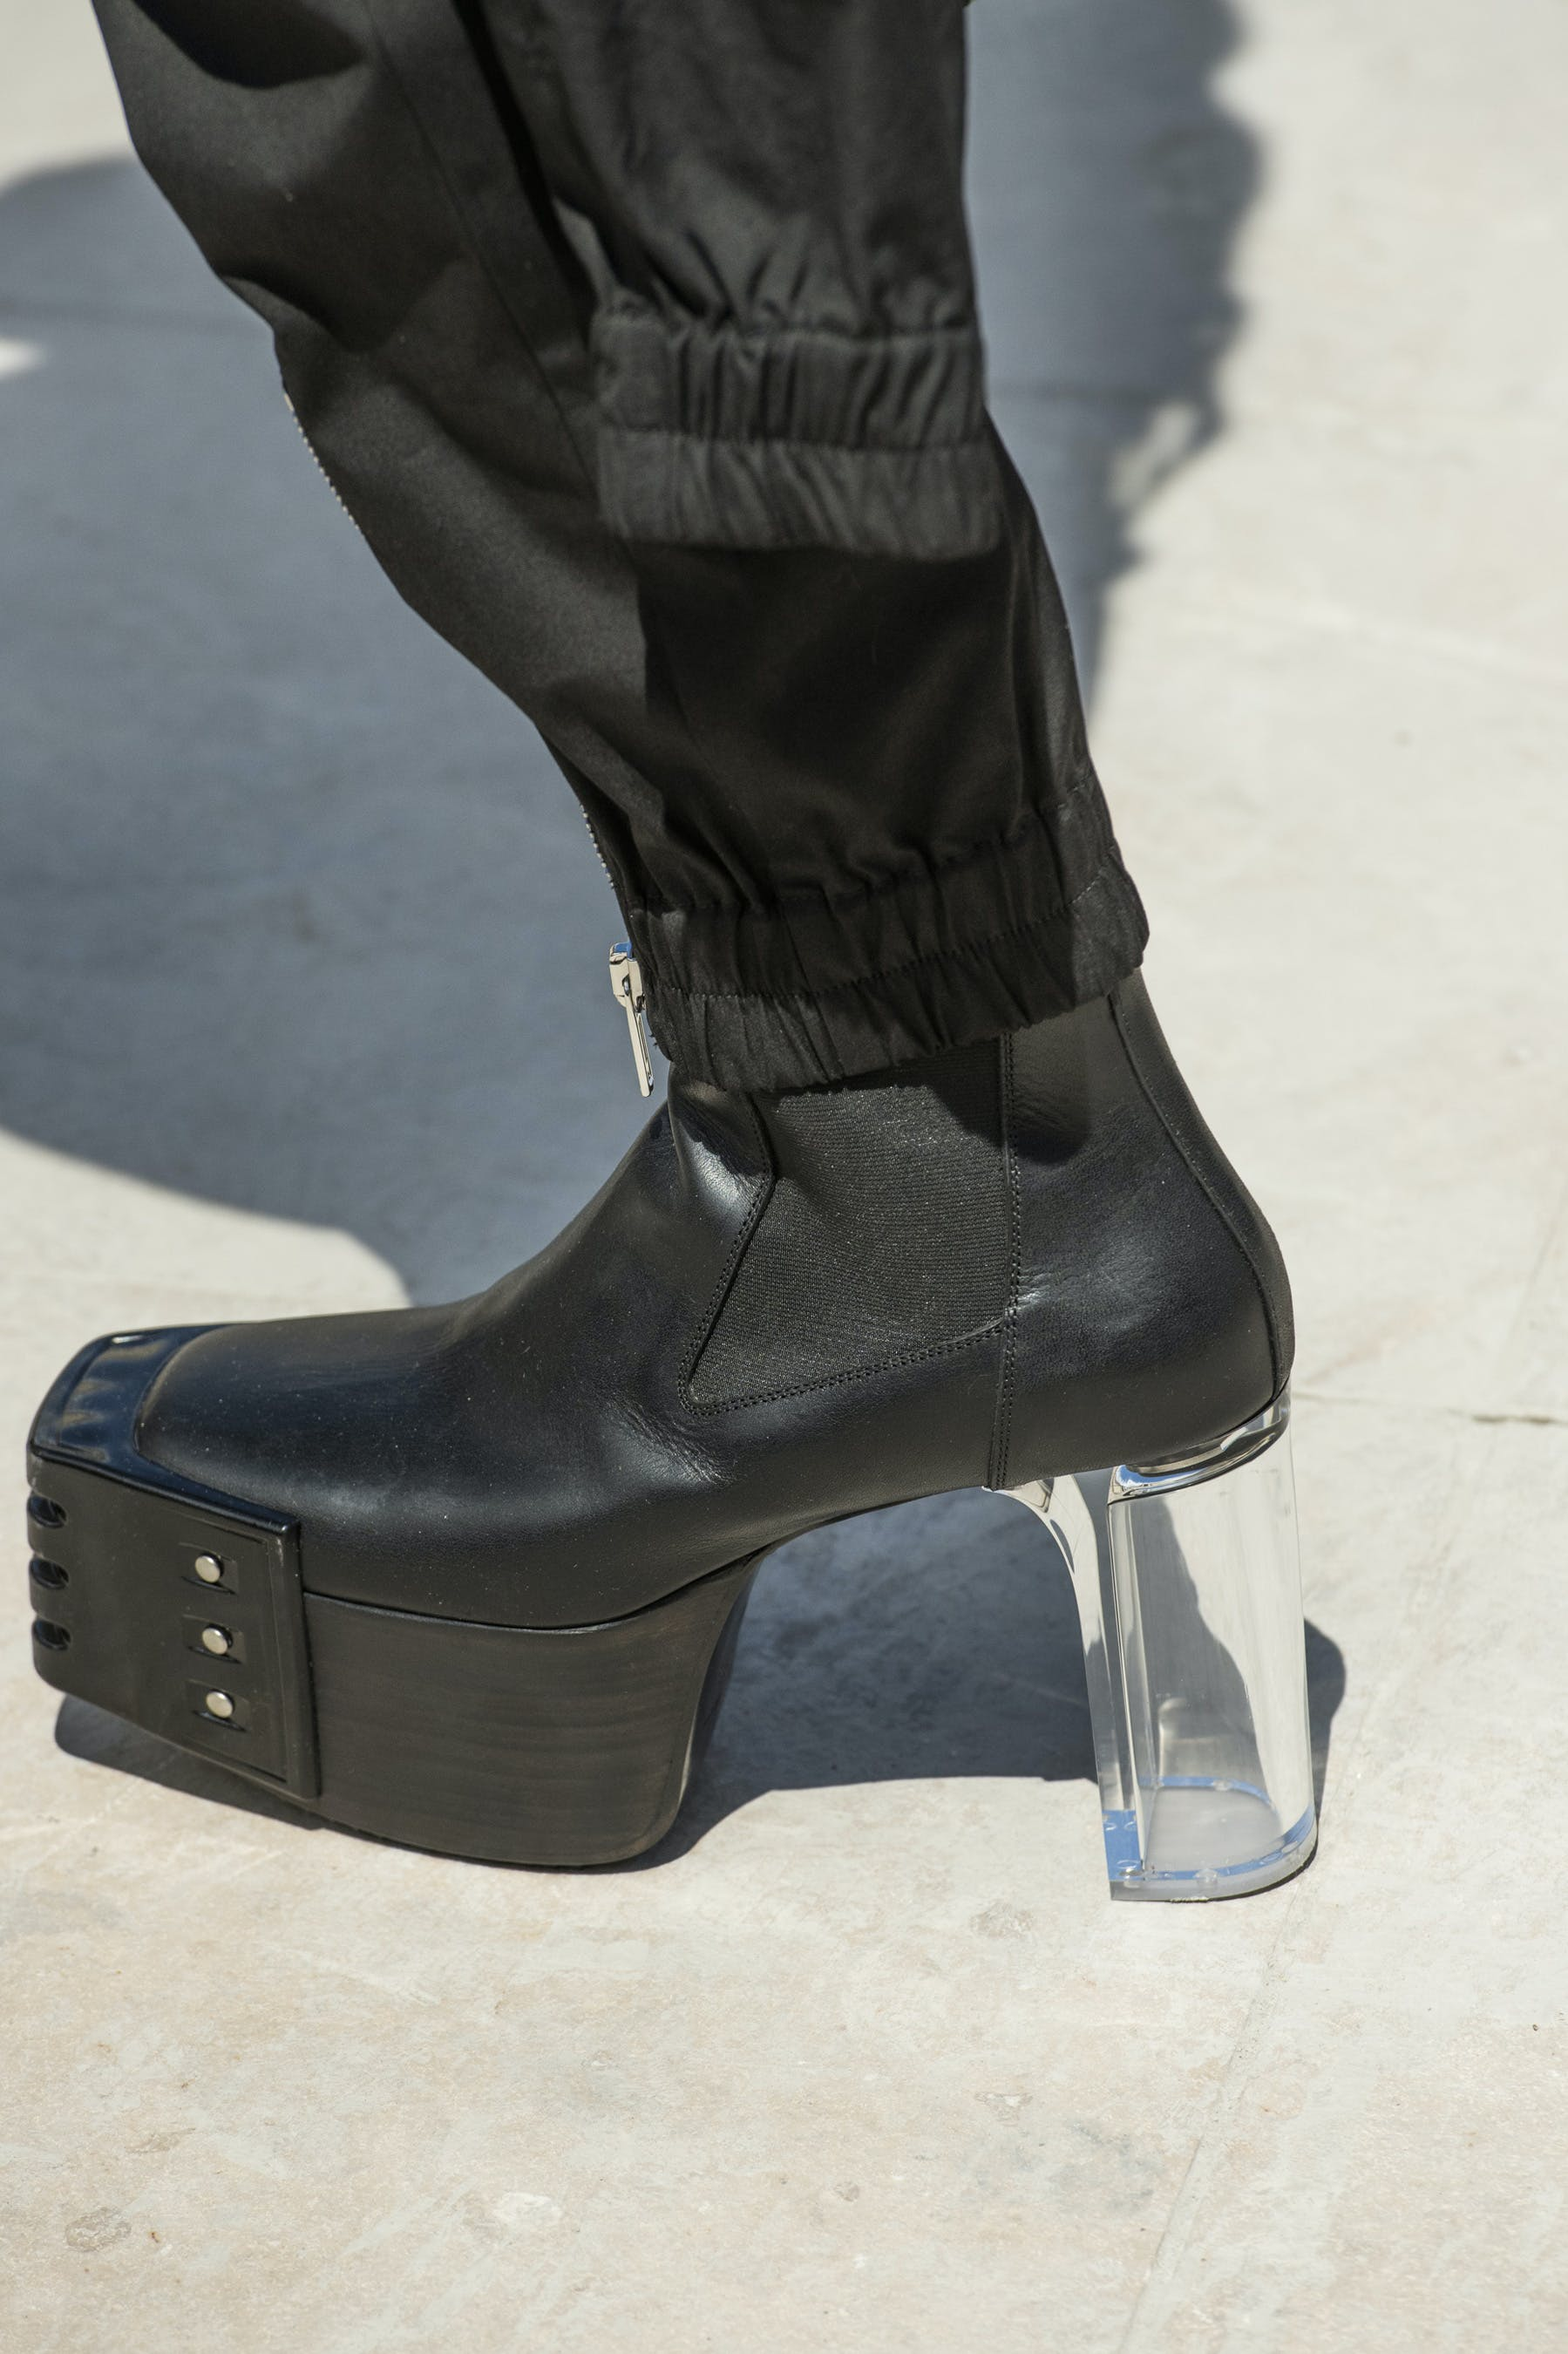 Rick Owens Runway Details Elastic Kiss Grill Boots In Black Leather With Transparent Heel Side View Mens SS20 Tecautl